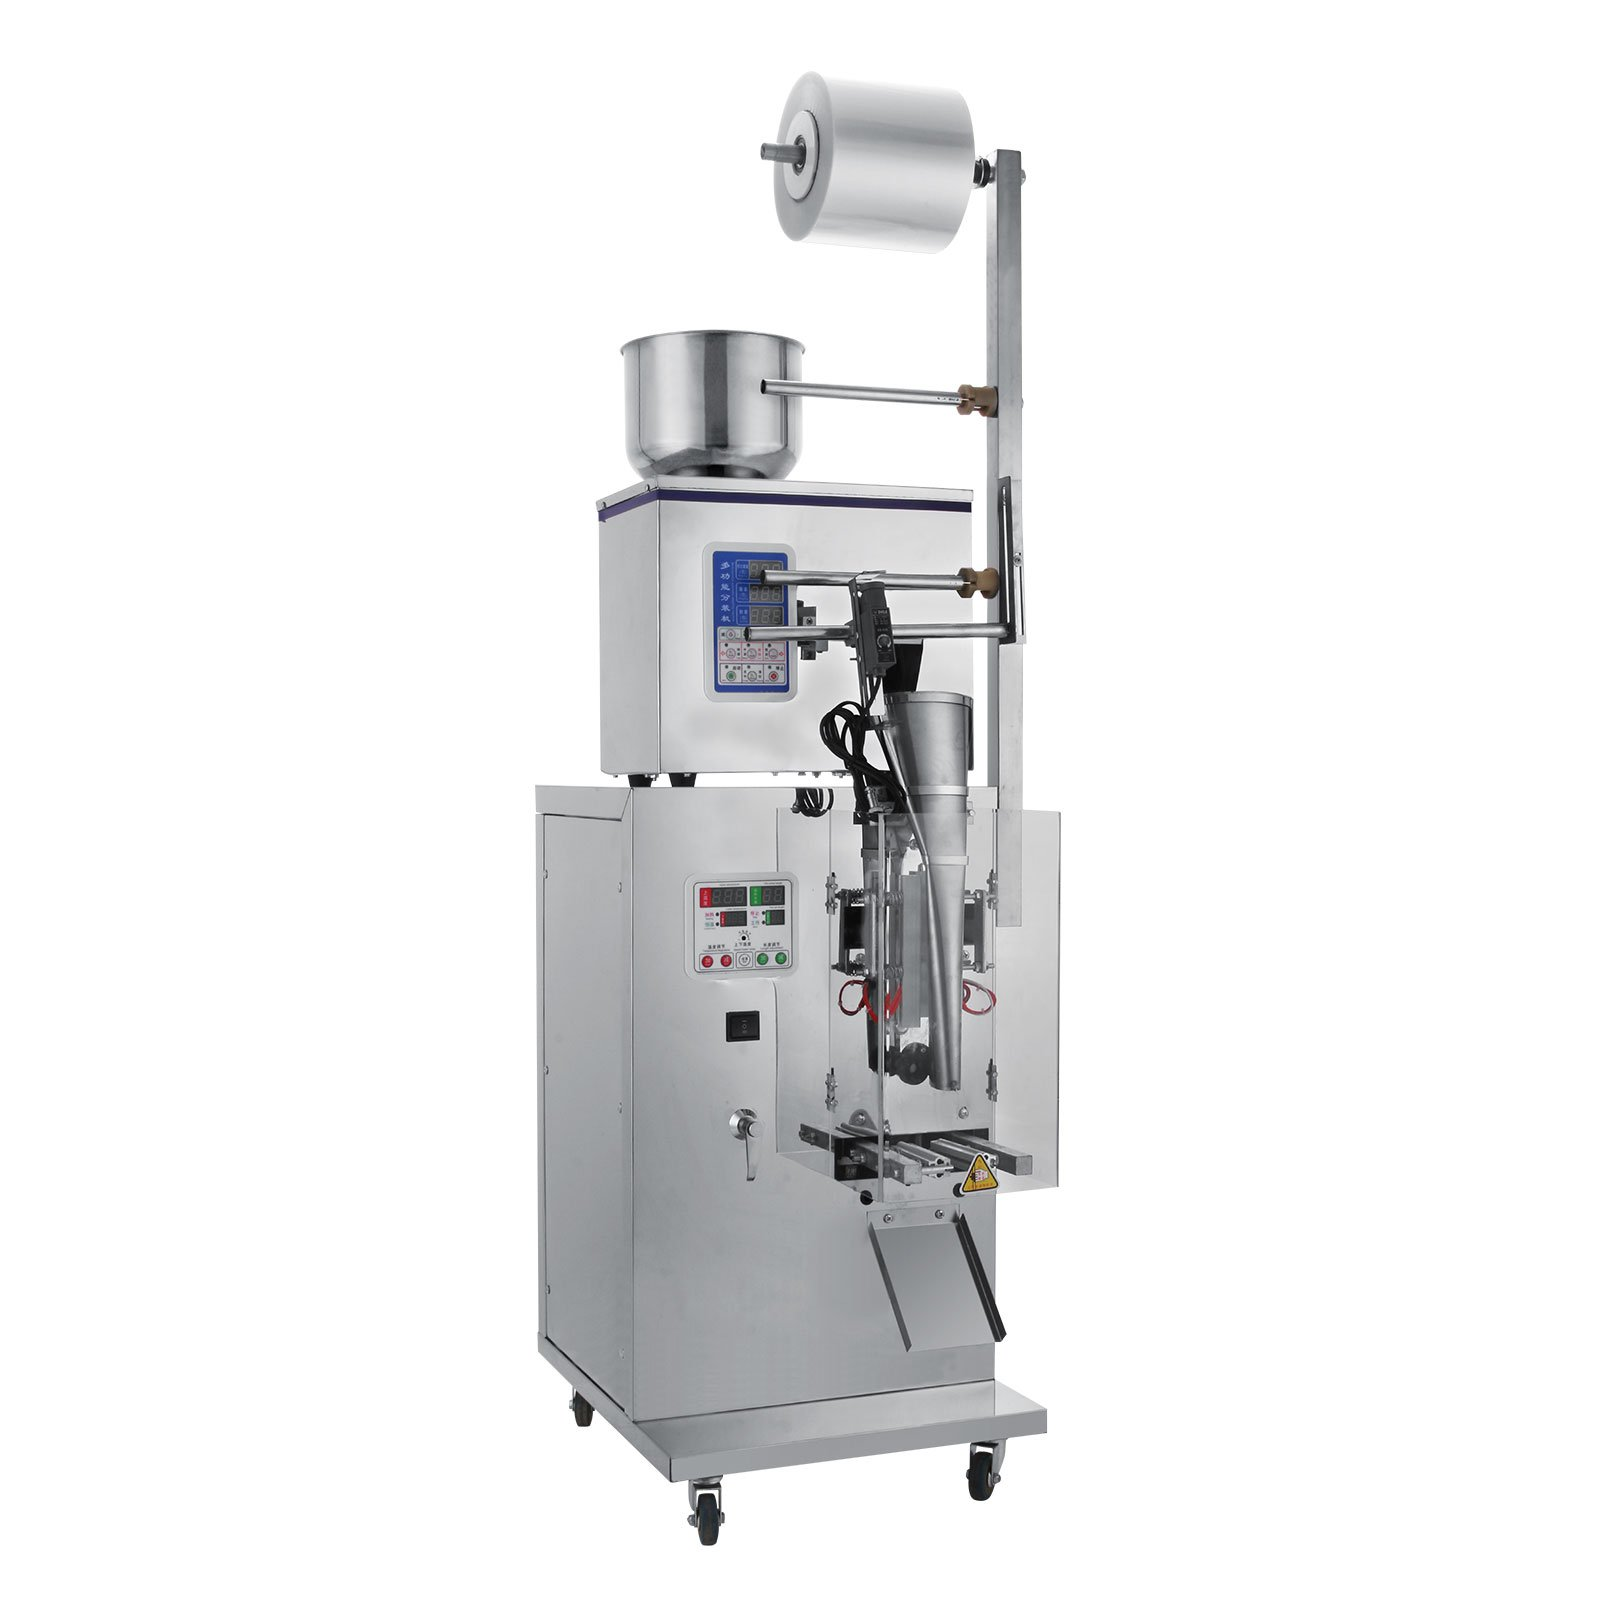 Happybuy Powder Filler Machine 2-50g Automatic Particle Weighing Filling Machine 240W Powder Filling Machine for Sealing Tea Seed Grain Heavy Duty Stainless Steel